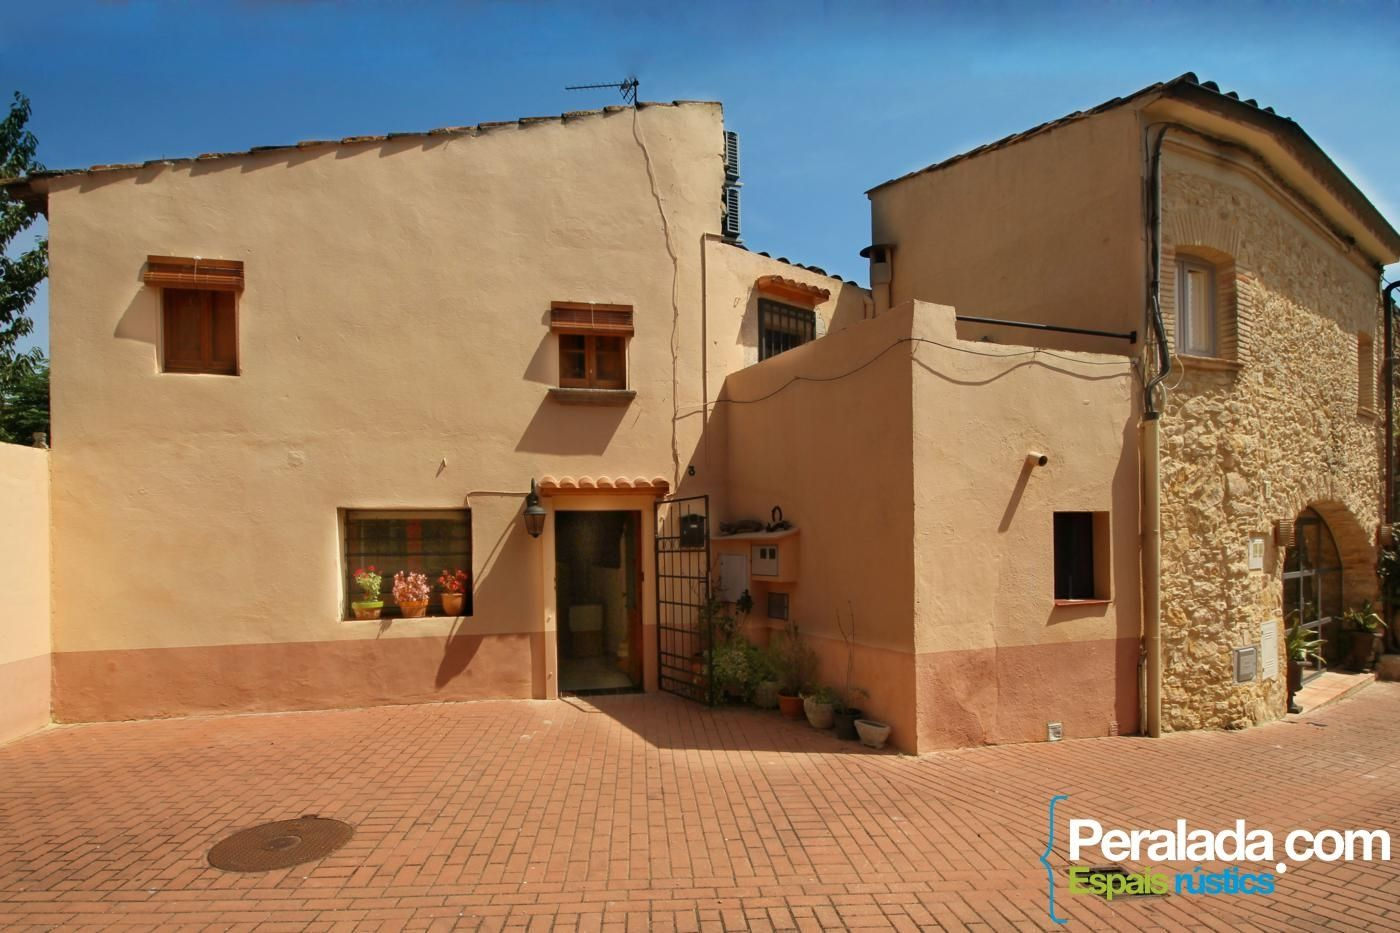 Alquiler Casa  Carrer trull. Acogedor,agradable, confortable.